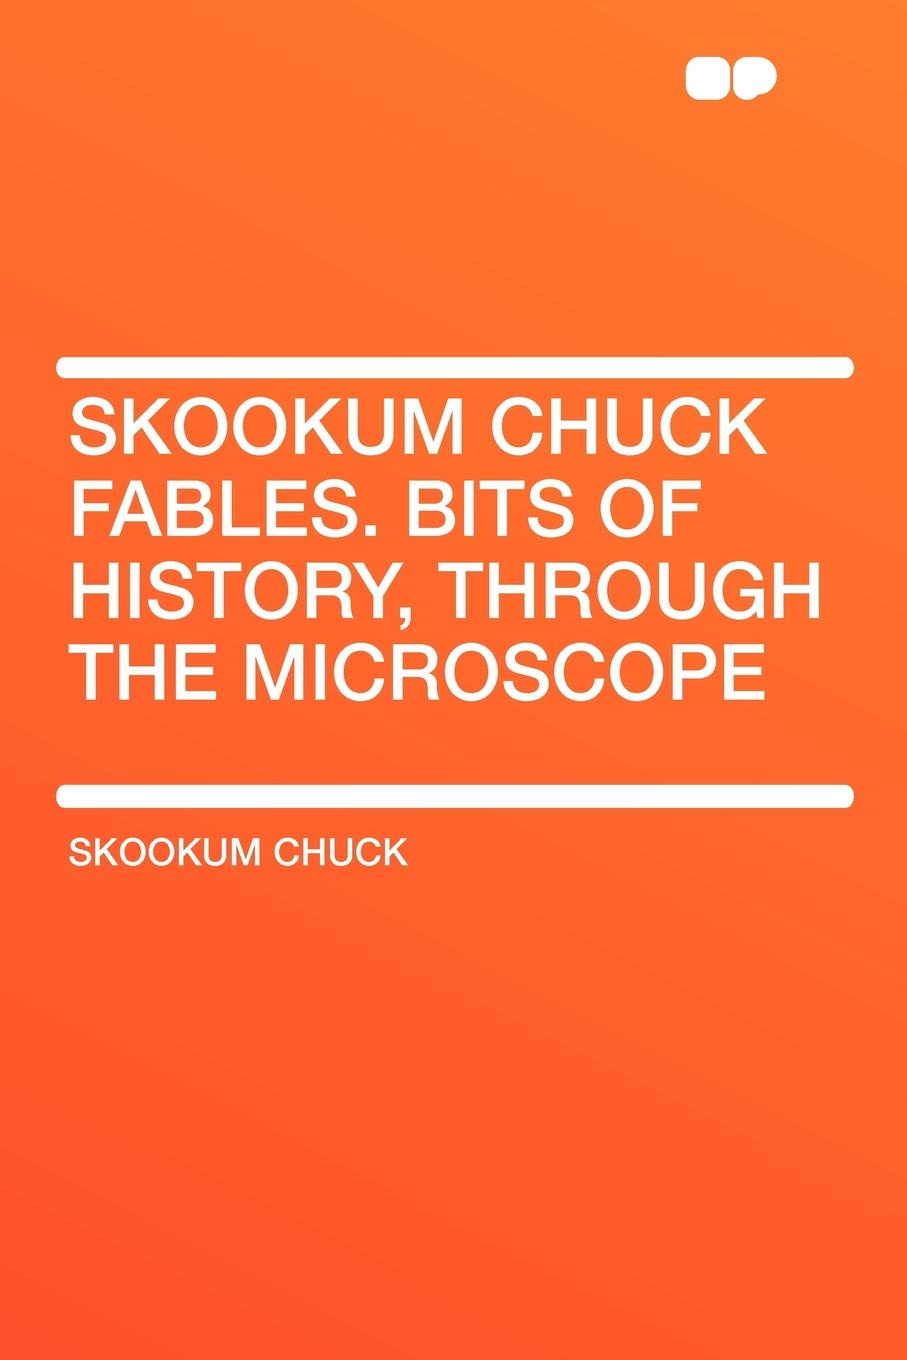 Skookum Chuck Skookum Chuck Fables. Bits of History, Through the Microscope hy008 microscope telescope